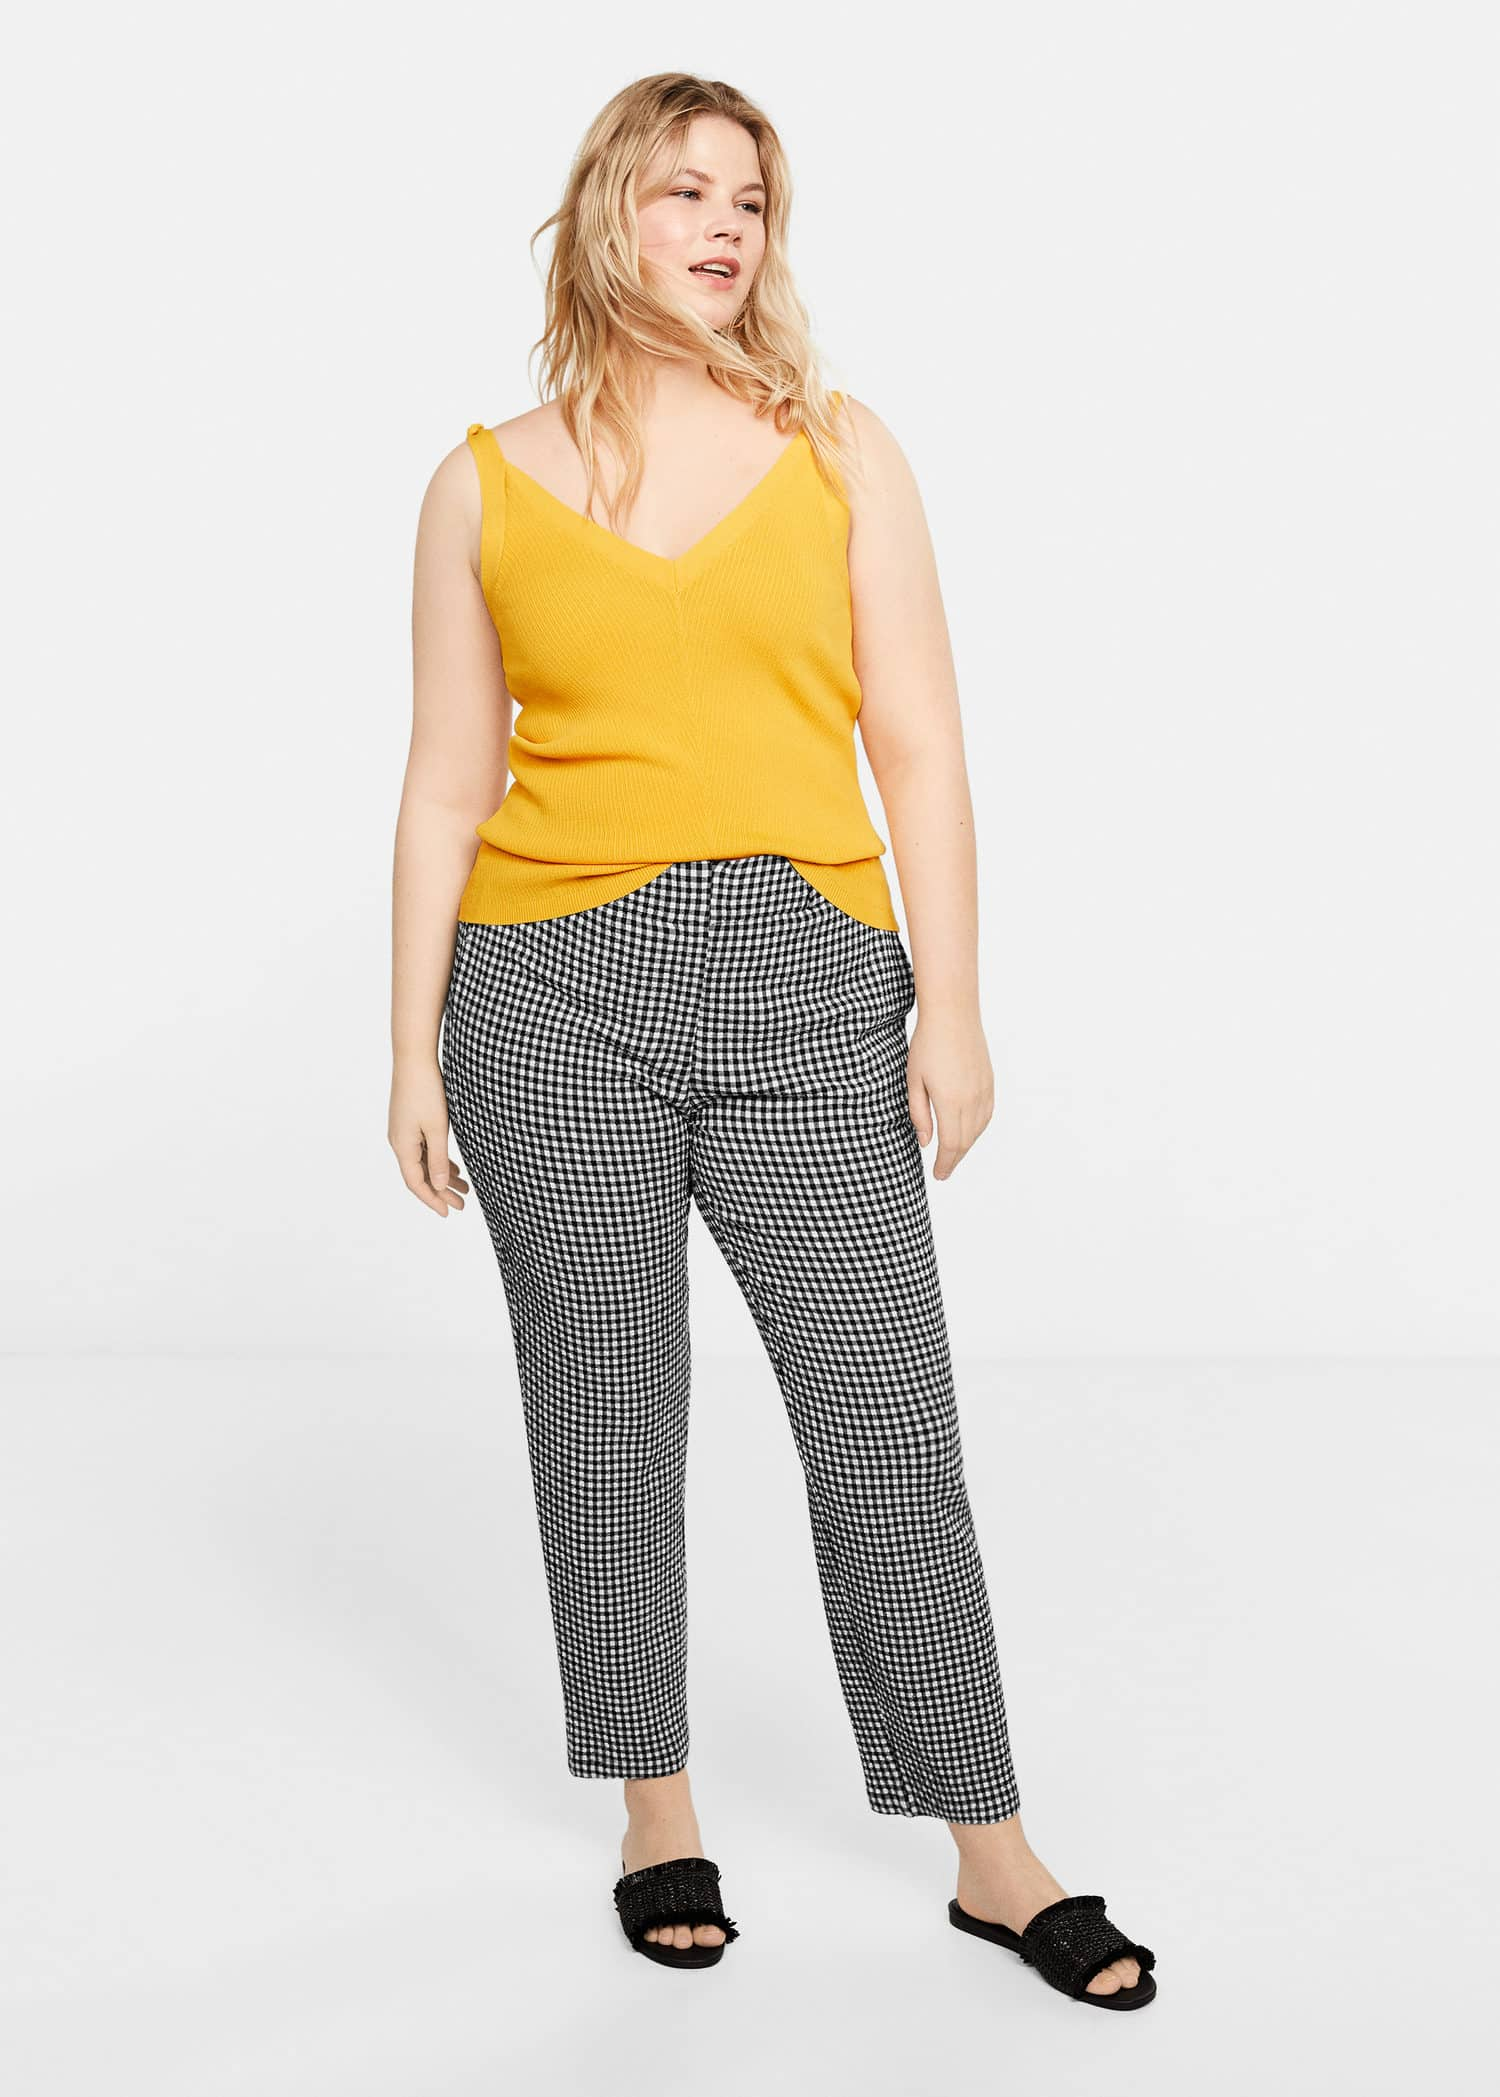 Trousers Gingham Pattern Check Check Trousers Check Gingham Gingham Pattern Pattern ymn0w8OvN